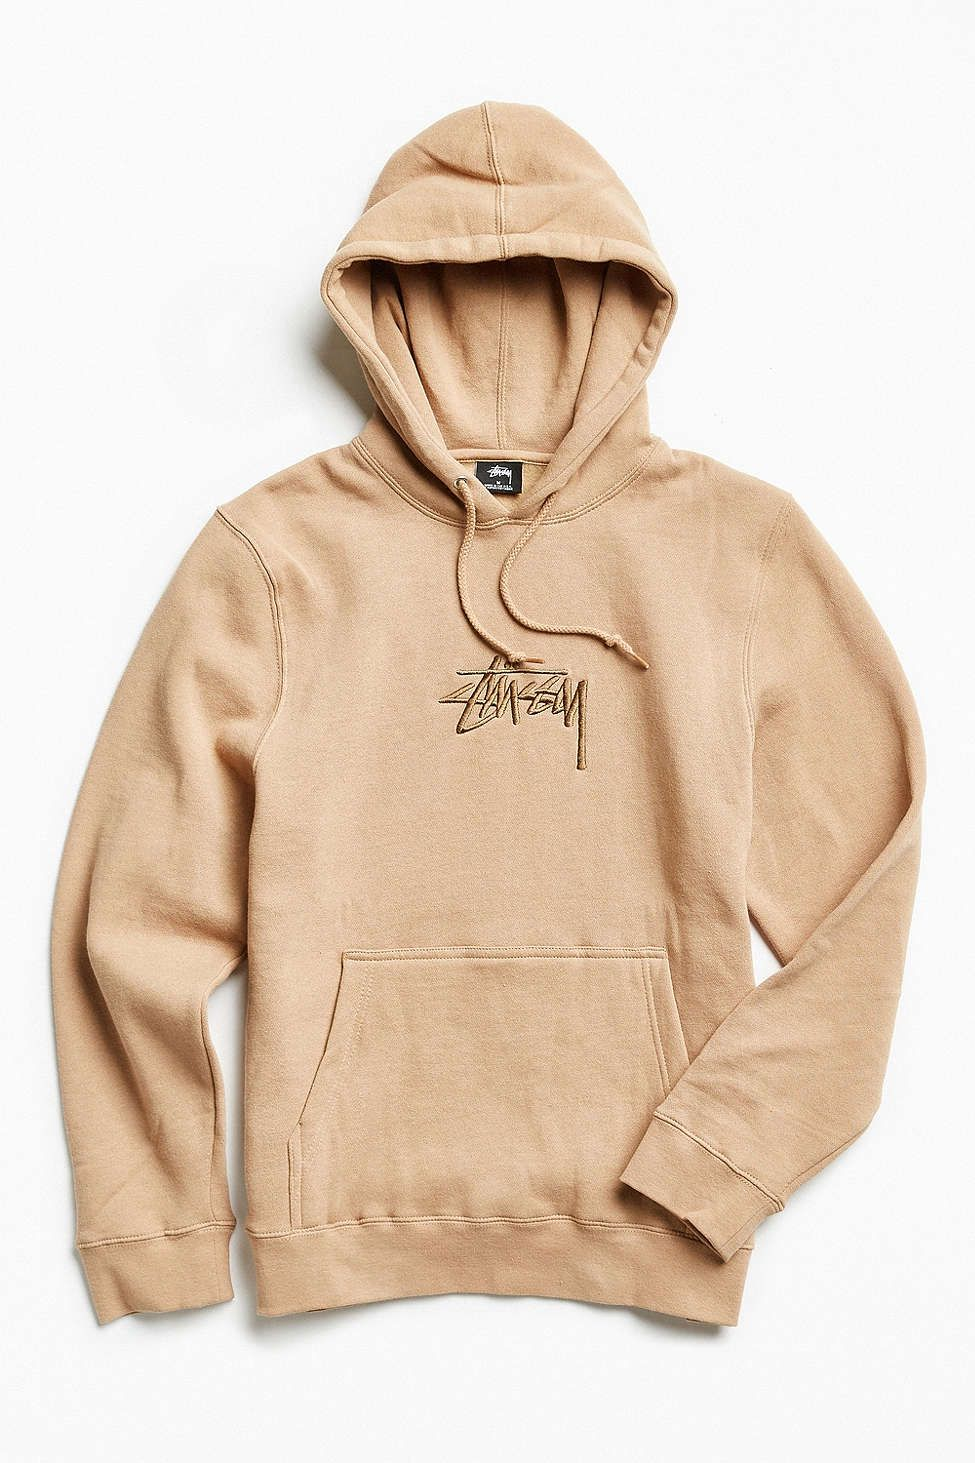 f9022d56 Stussy Stock Embroidered Hoodie Sweatshirt | \ S T Y L E ...